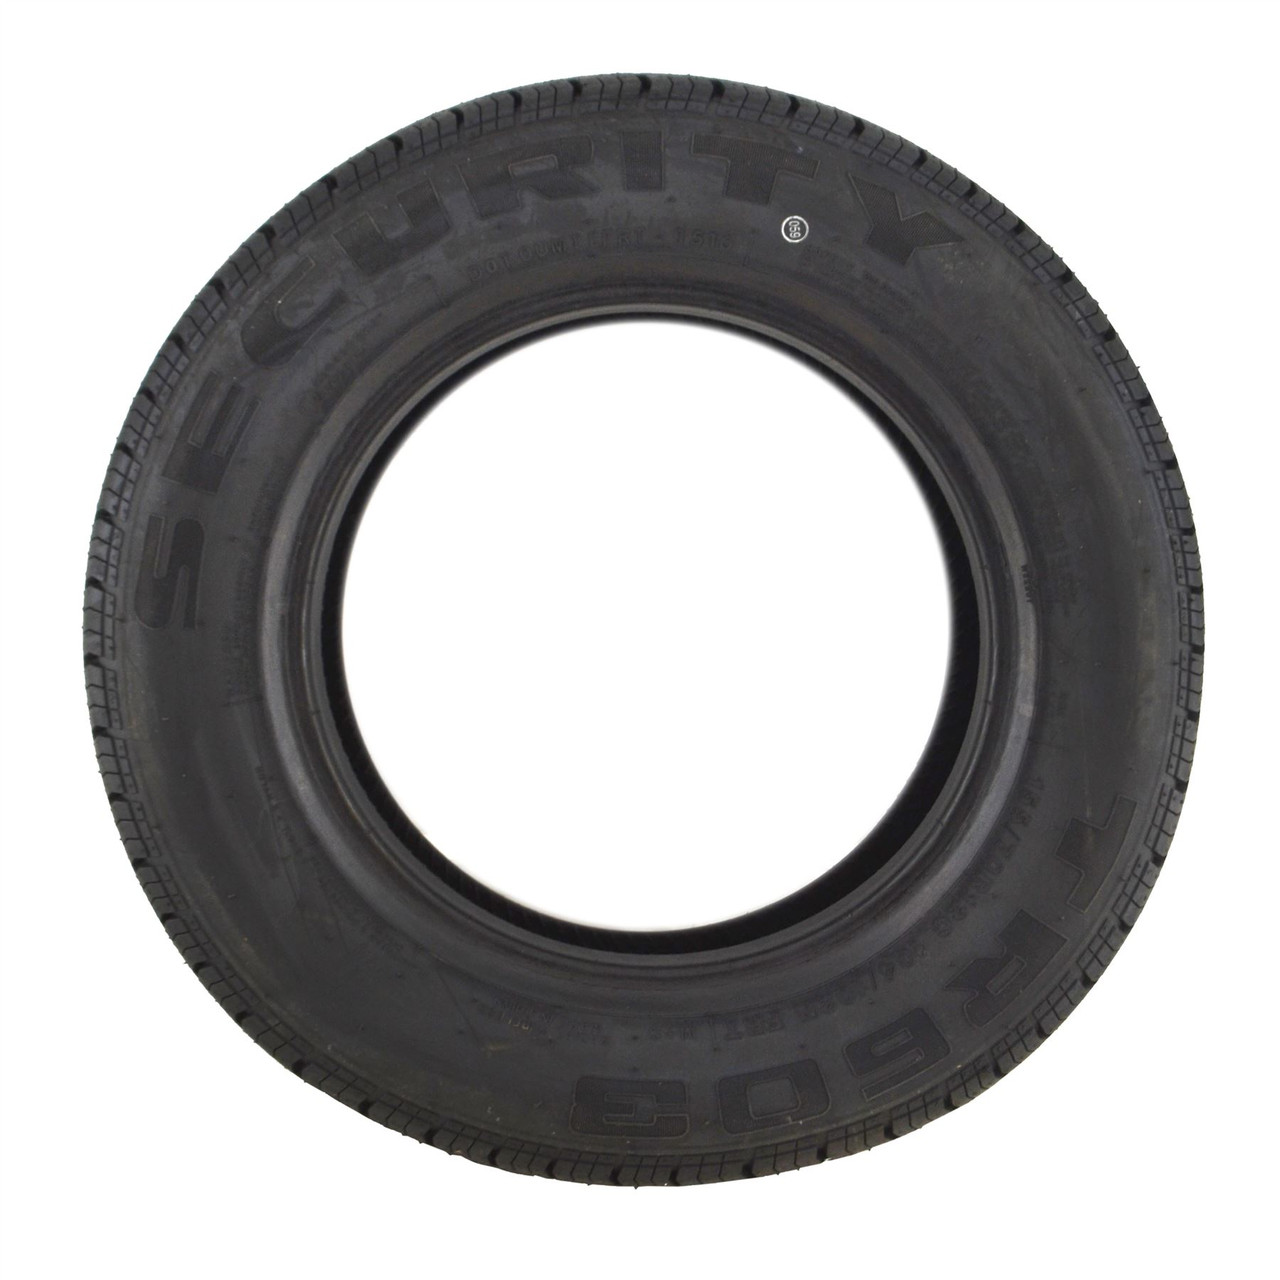 AB Tools 3.50 x 8 4 Ply High Speed Trailer Tyre Erde Daxara 100 101 102 Tubeless